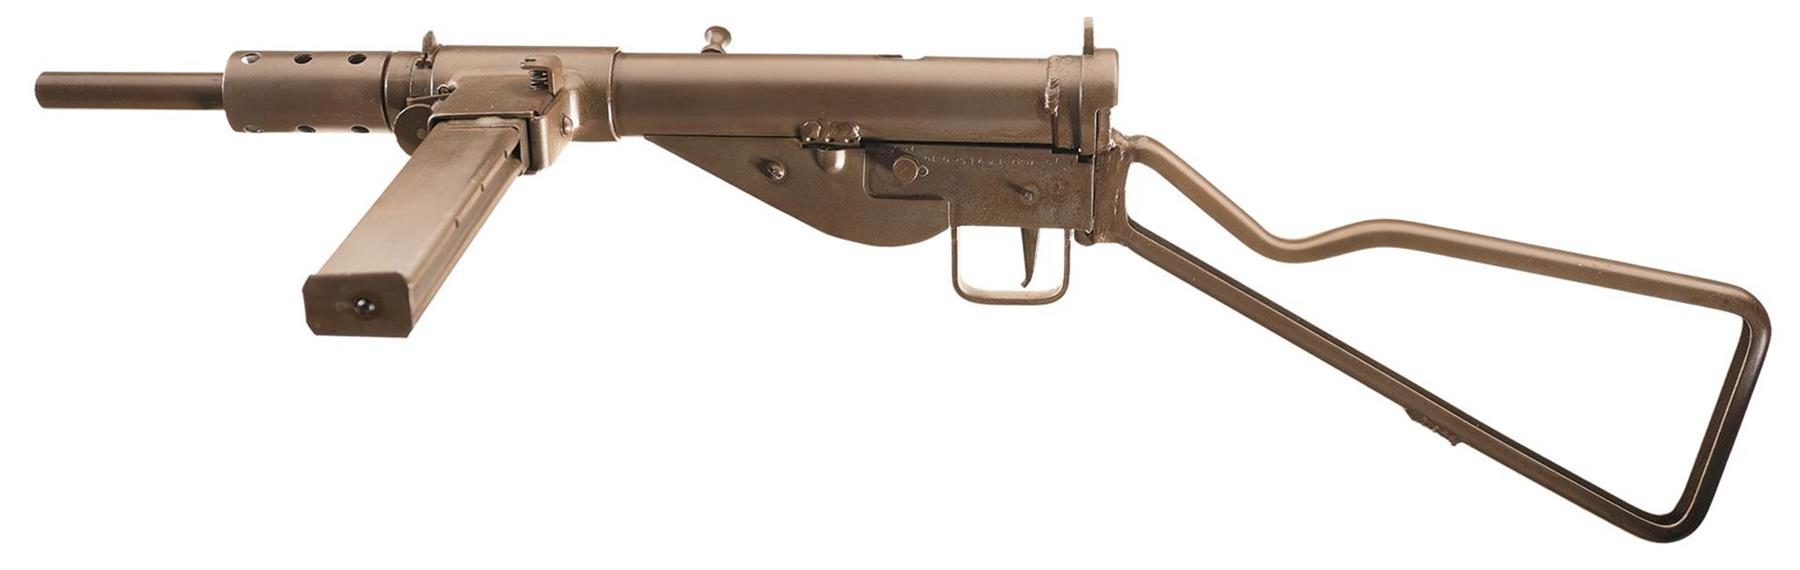 Fully Transferrable Class Three DLO Mark II Sten Sub-Machine Gun